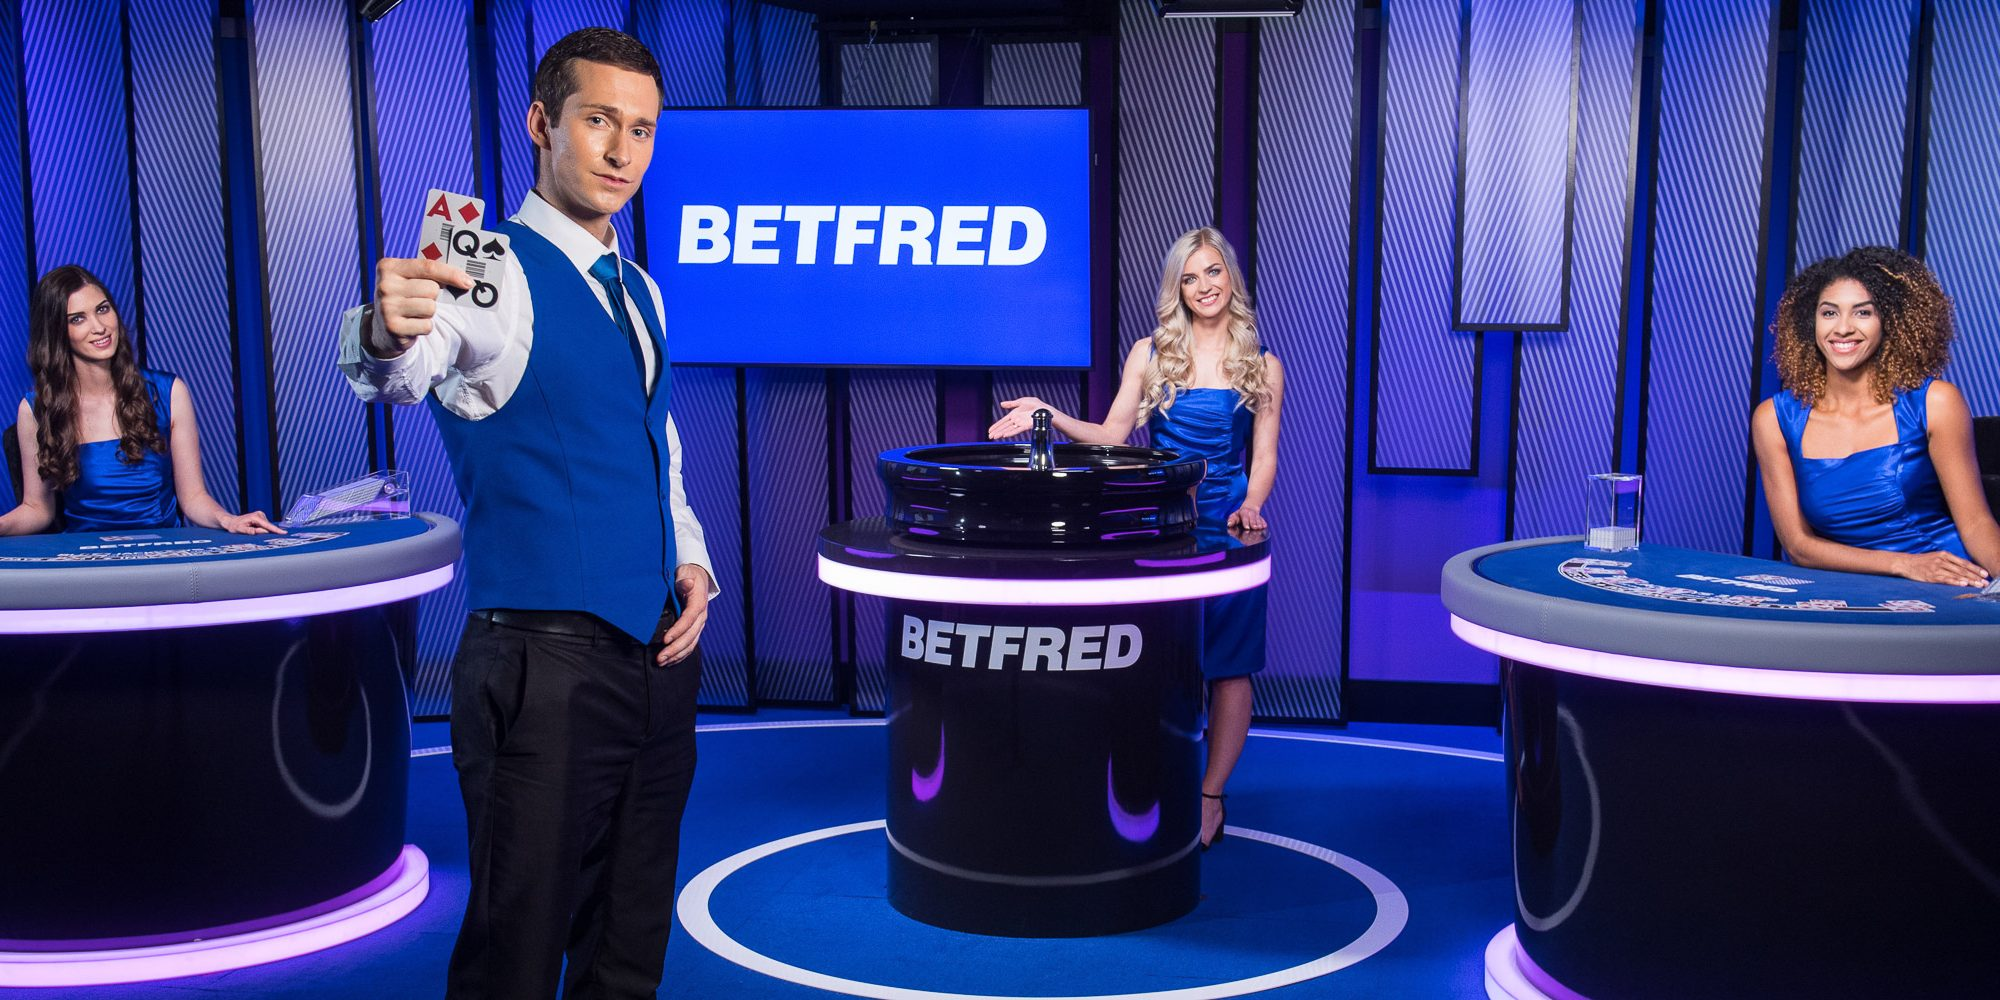 photograph of Betfred live casino games Riga studios gaming online gambling